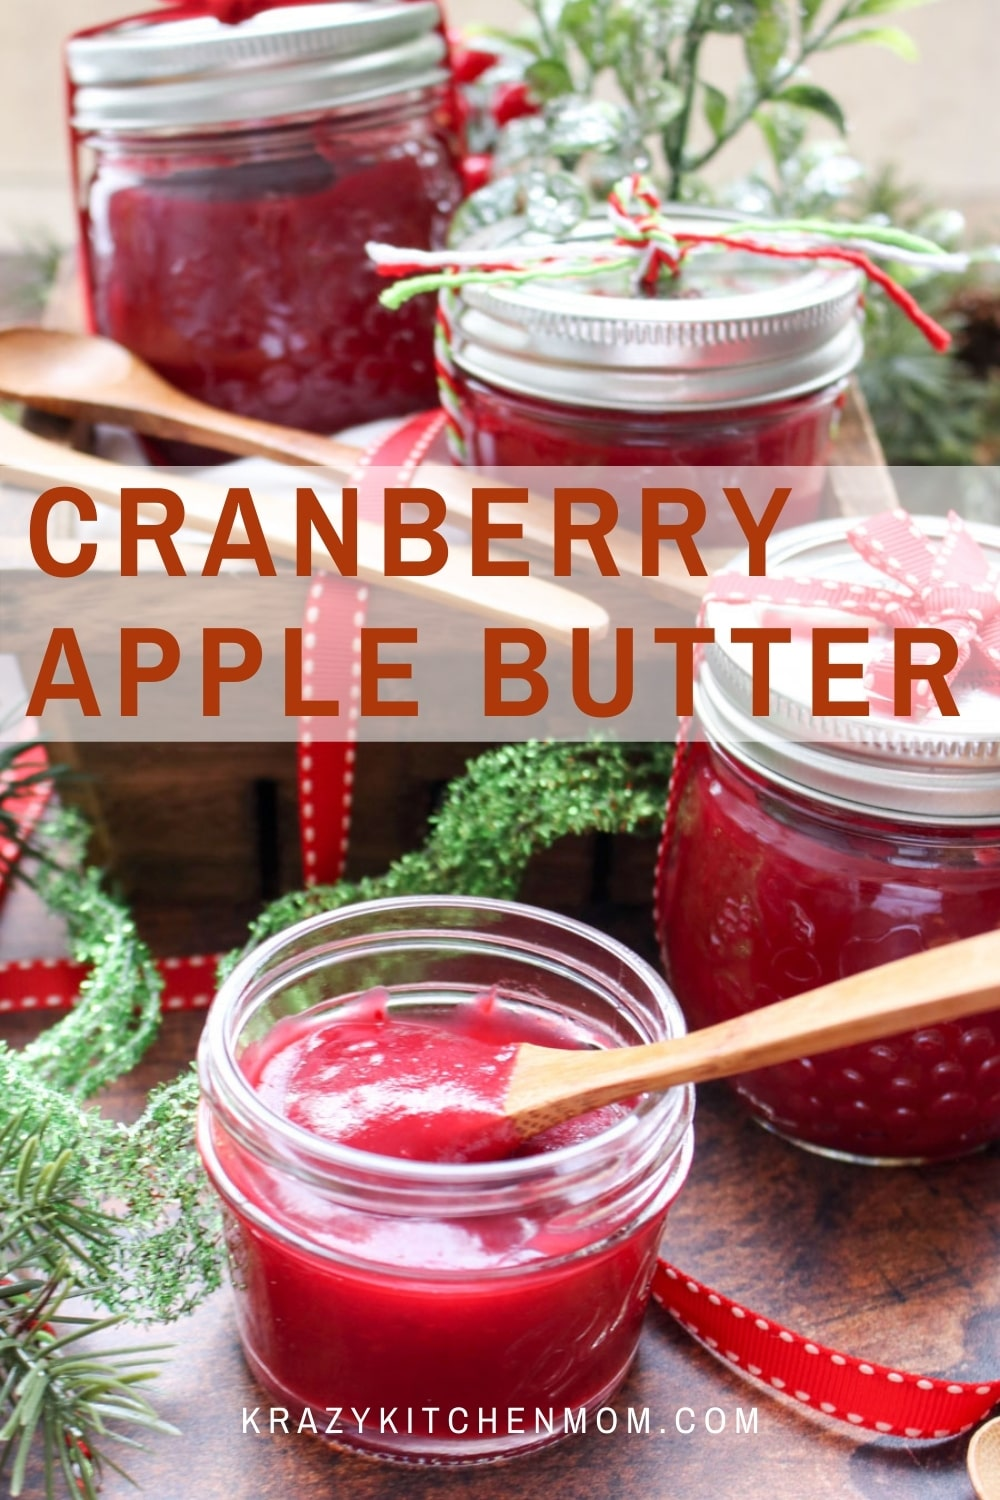 A simple and seasonal recipe to ring in the holidays all month. Cranberry apple butter is a sweet, creamy, tangy addition to your morning toast. via @krazykitchenmom